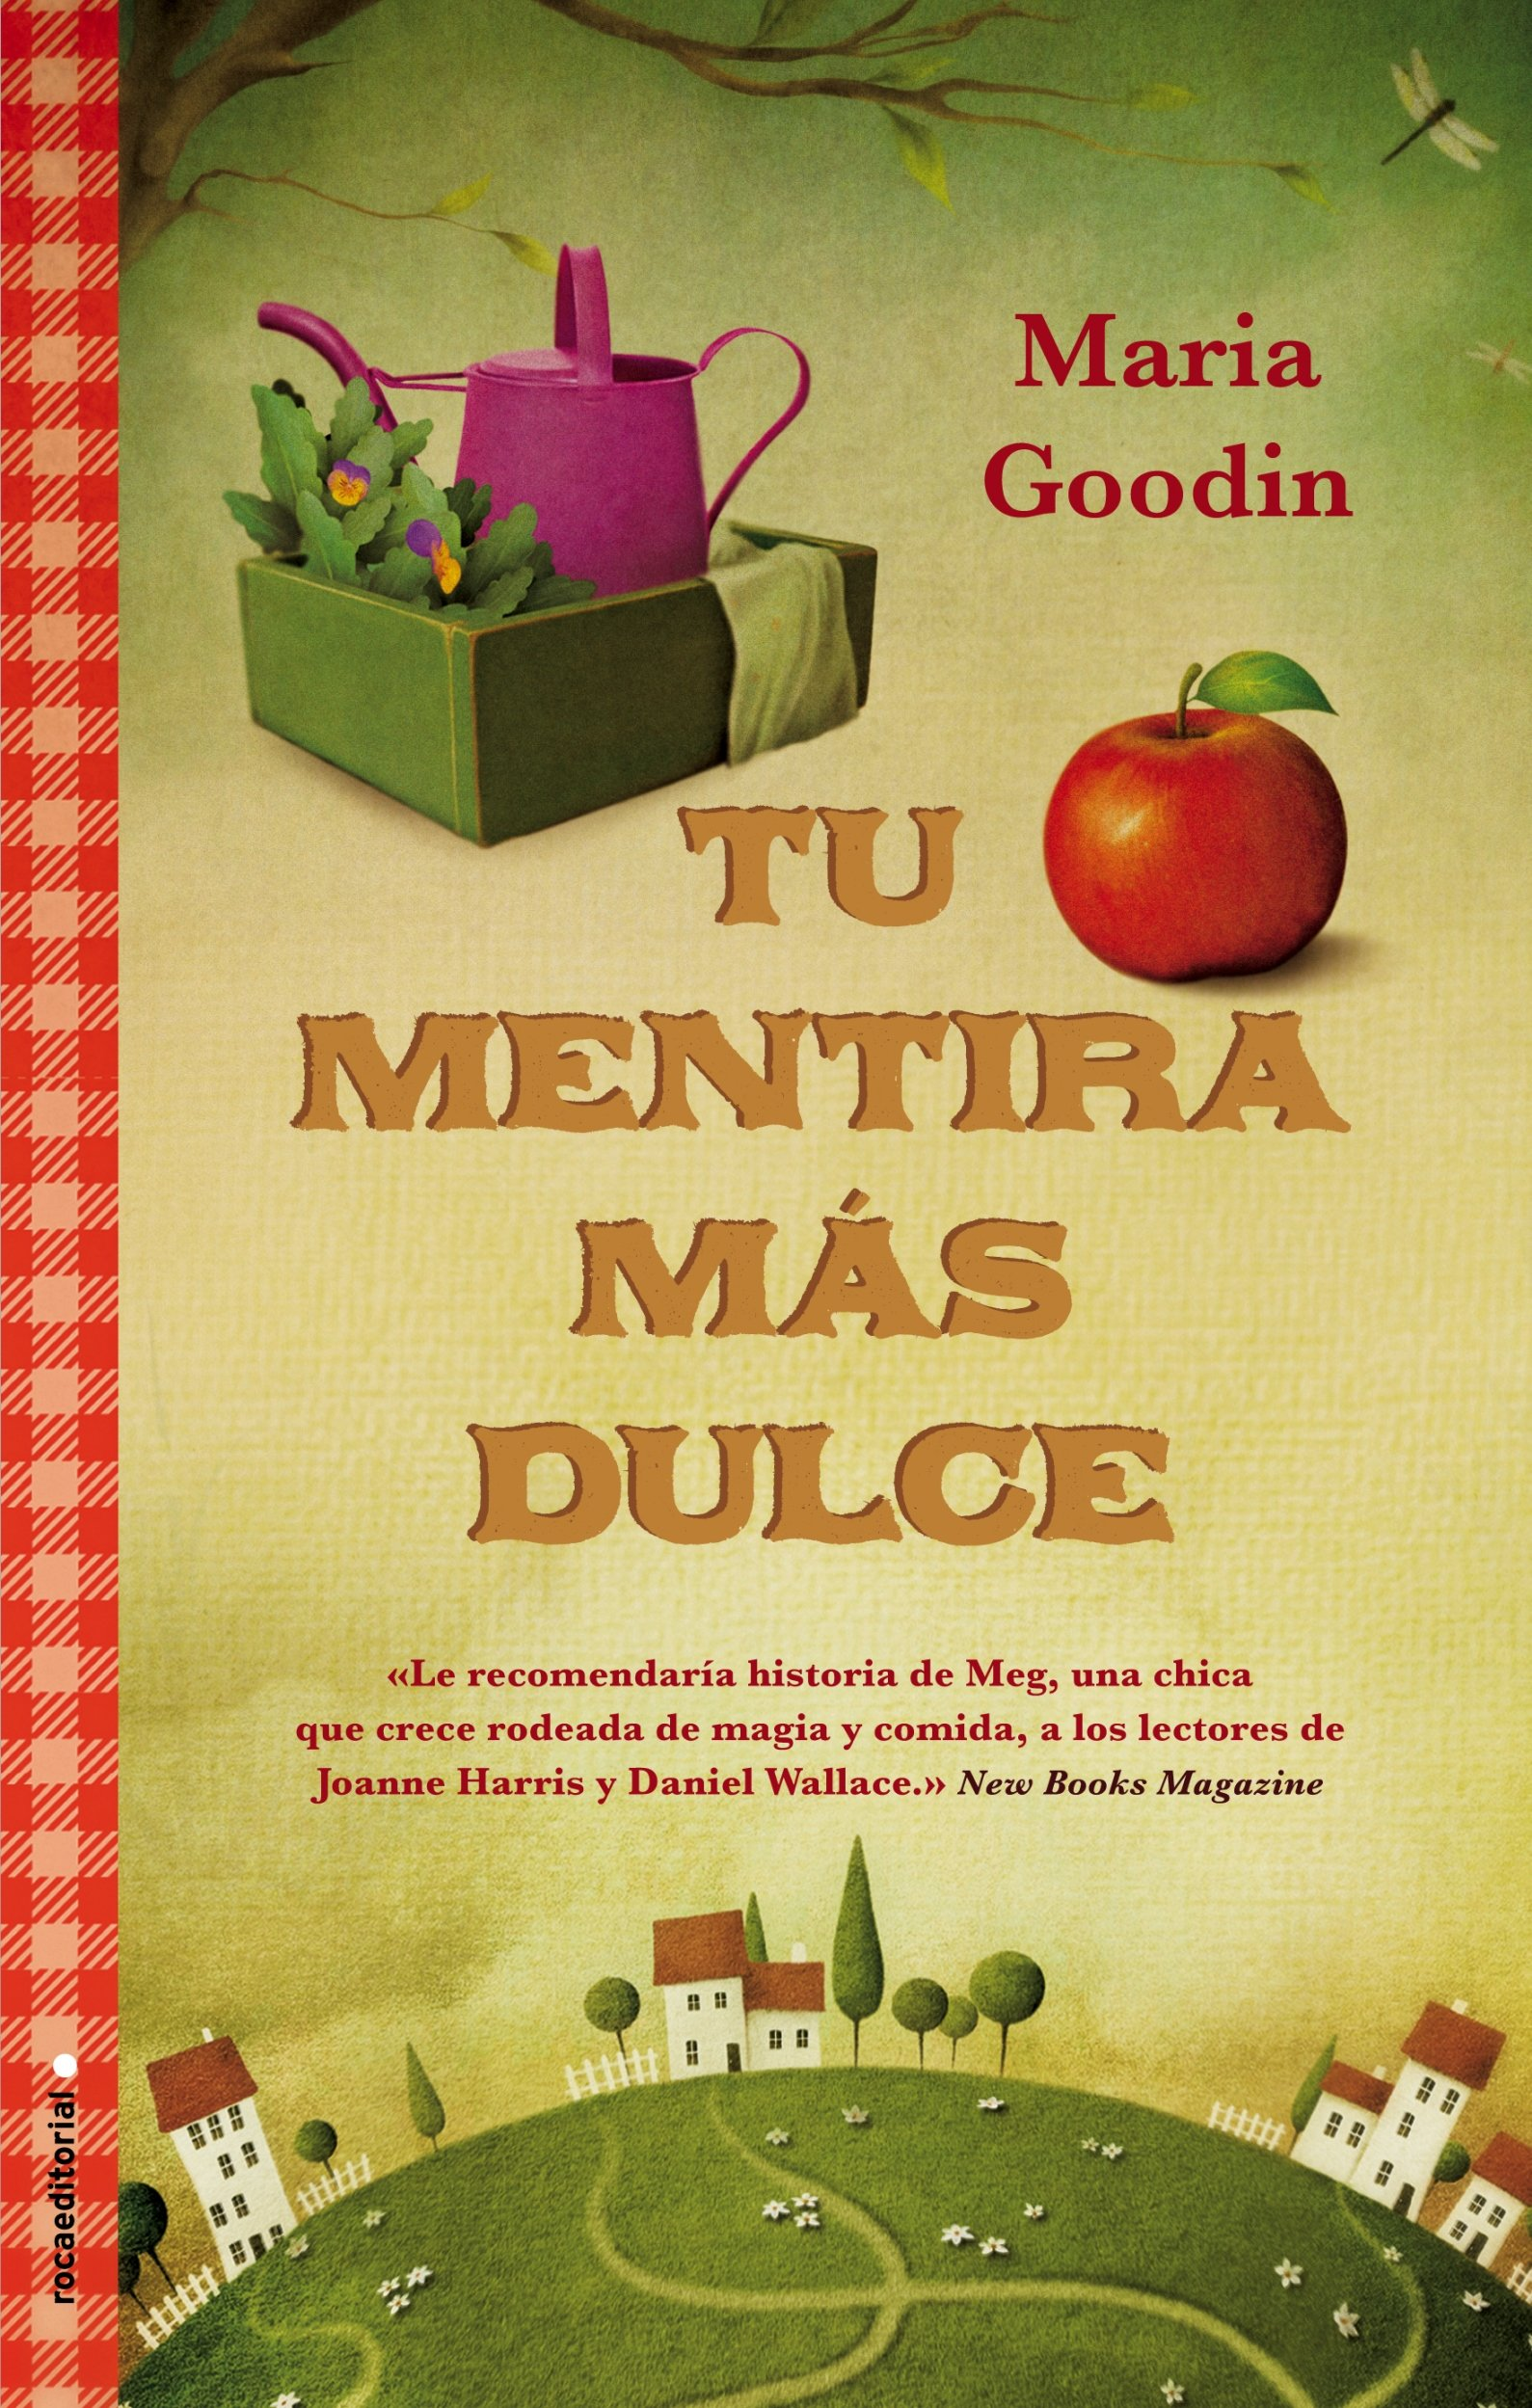 Tu mentira mas dulce (Spanish Edition): Maria Goodin: 9788499185859: Amazon.com: Books